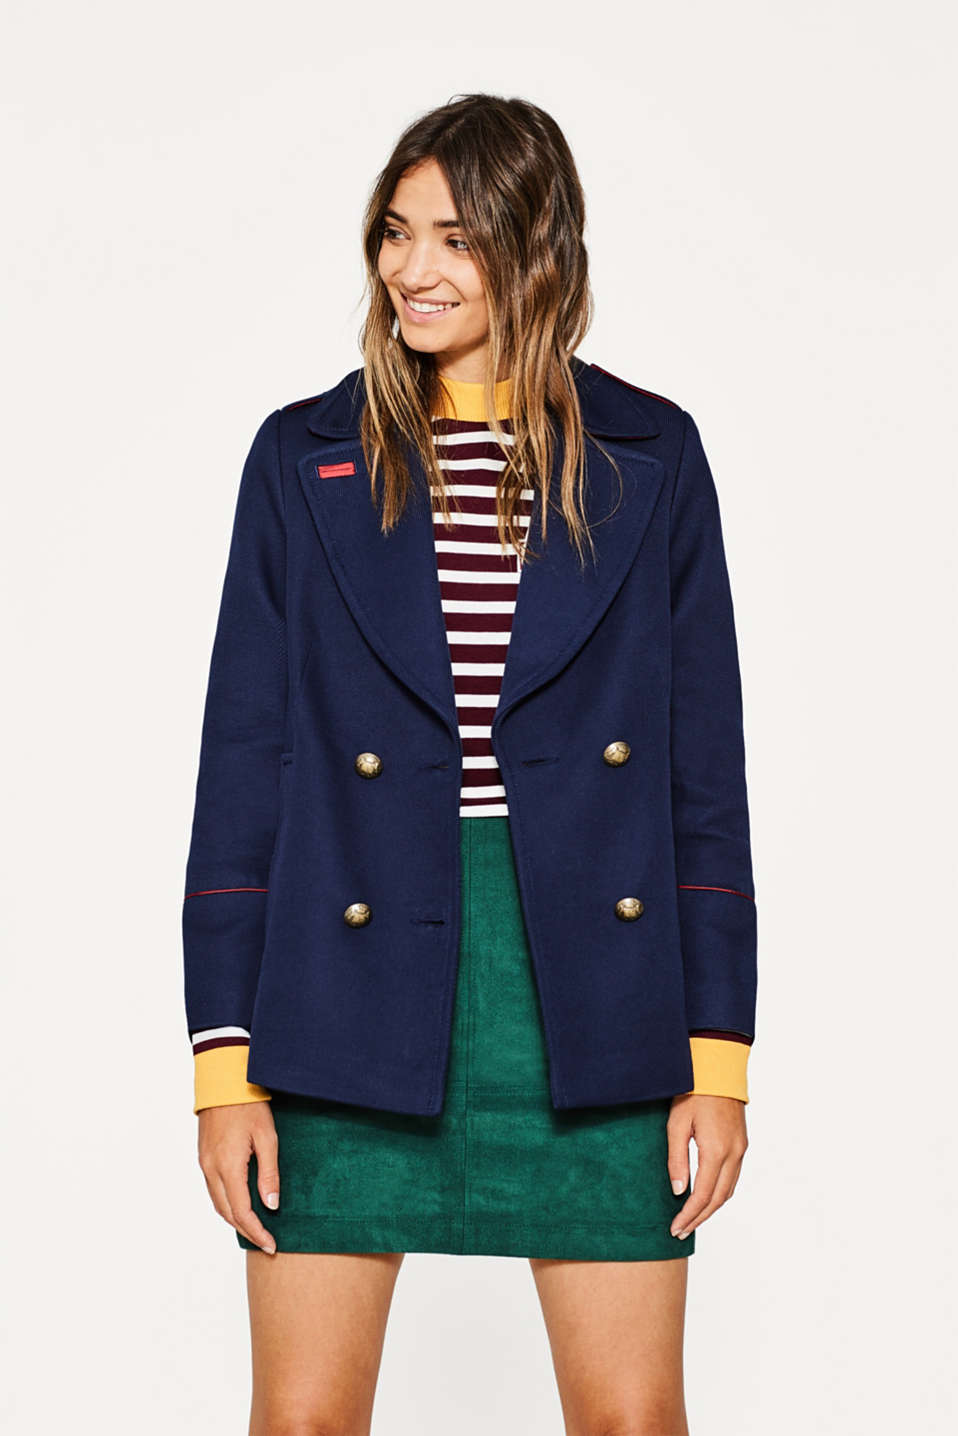 Esprit - A-line cotton pea jacket